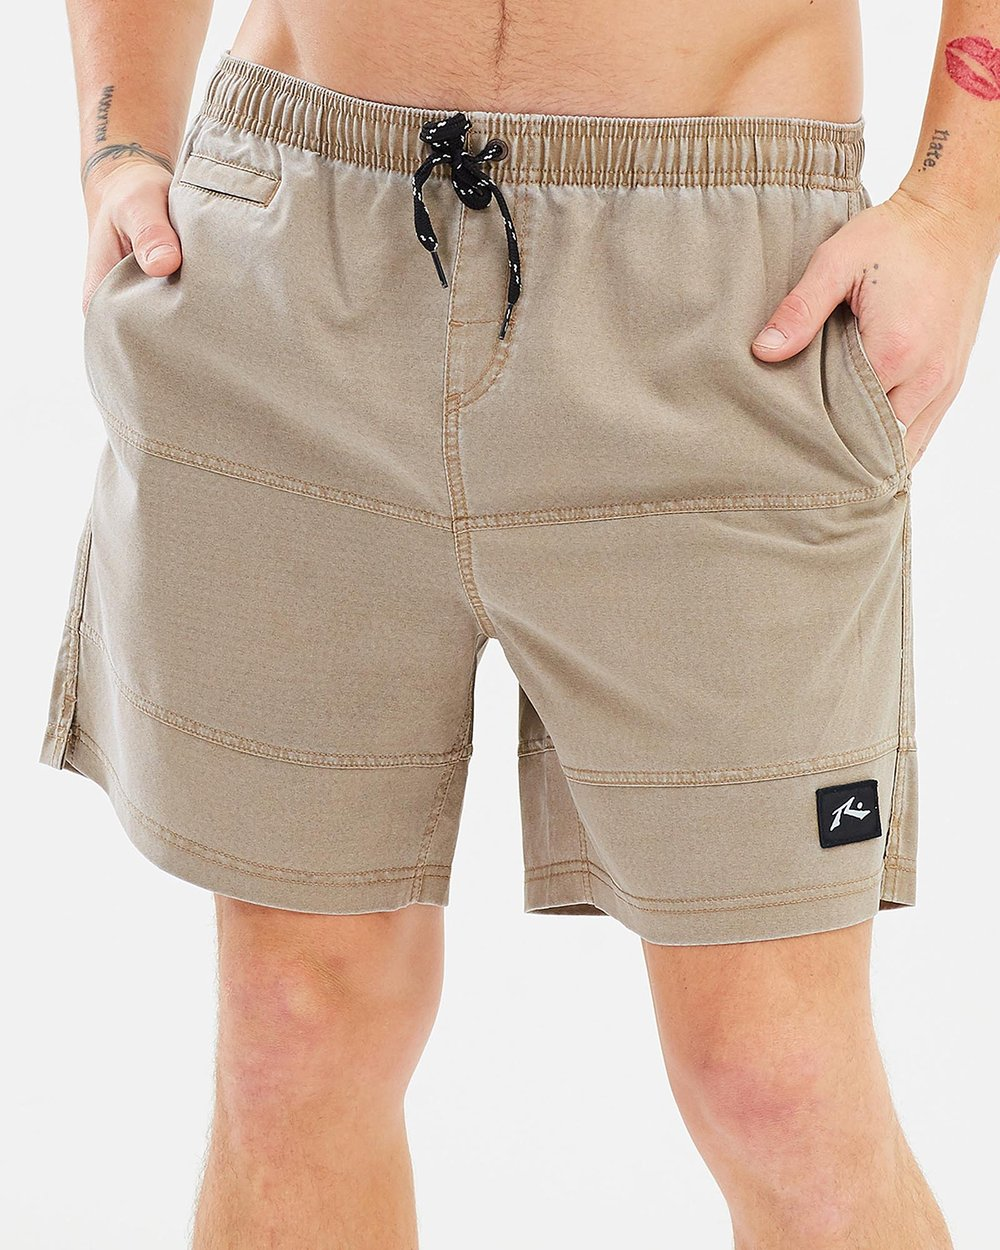 18f85d5116 Jiggy Jigs Elastic Boardshorts by Rusty Online | THE ICONIC | Australia